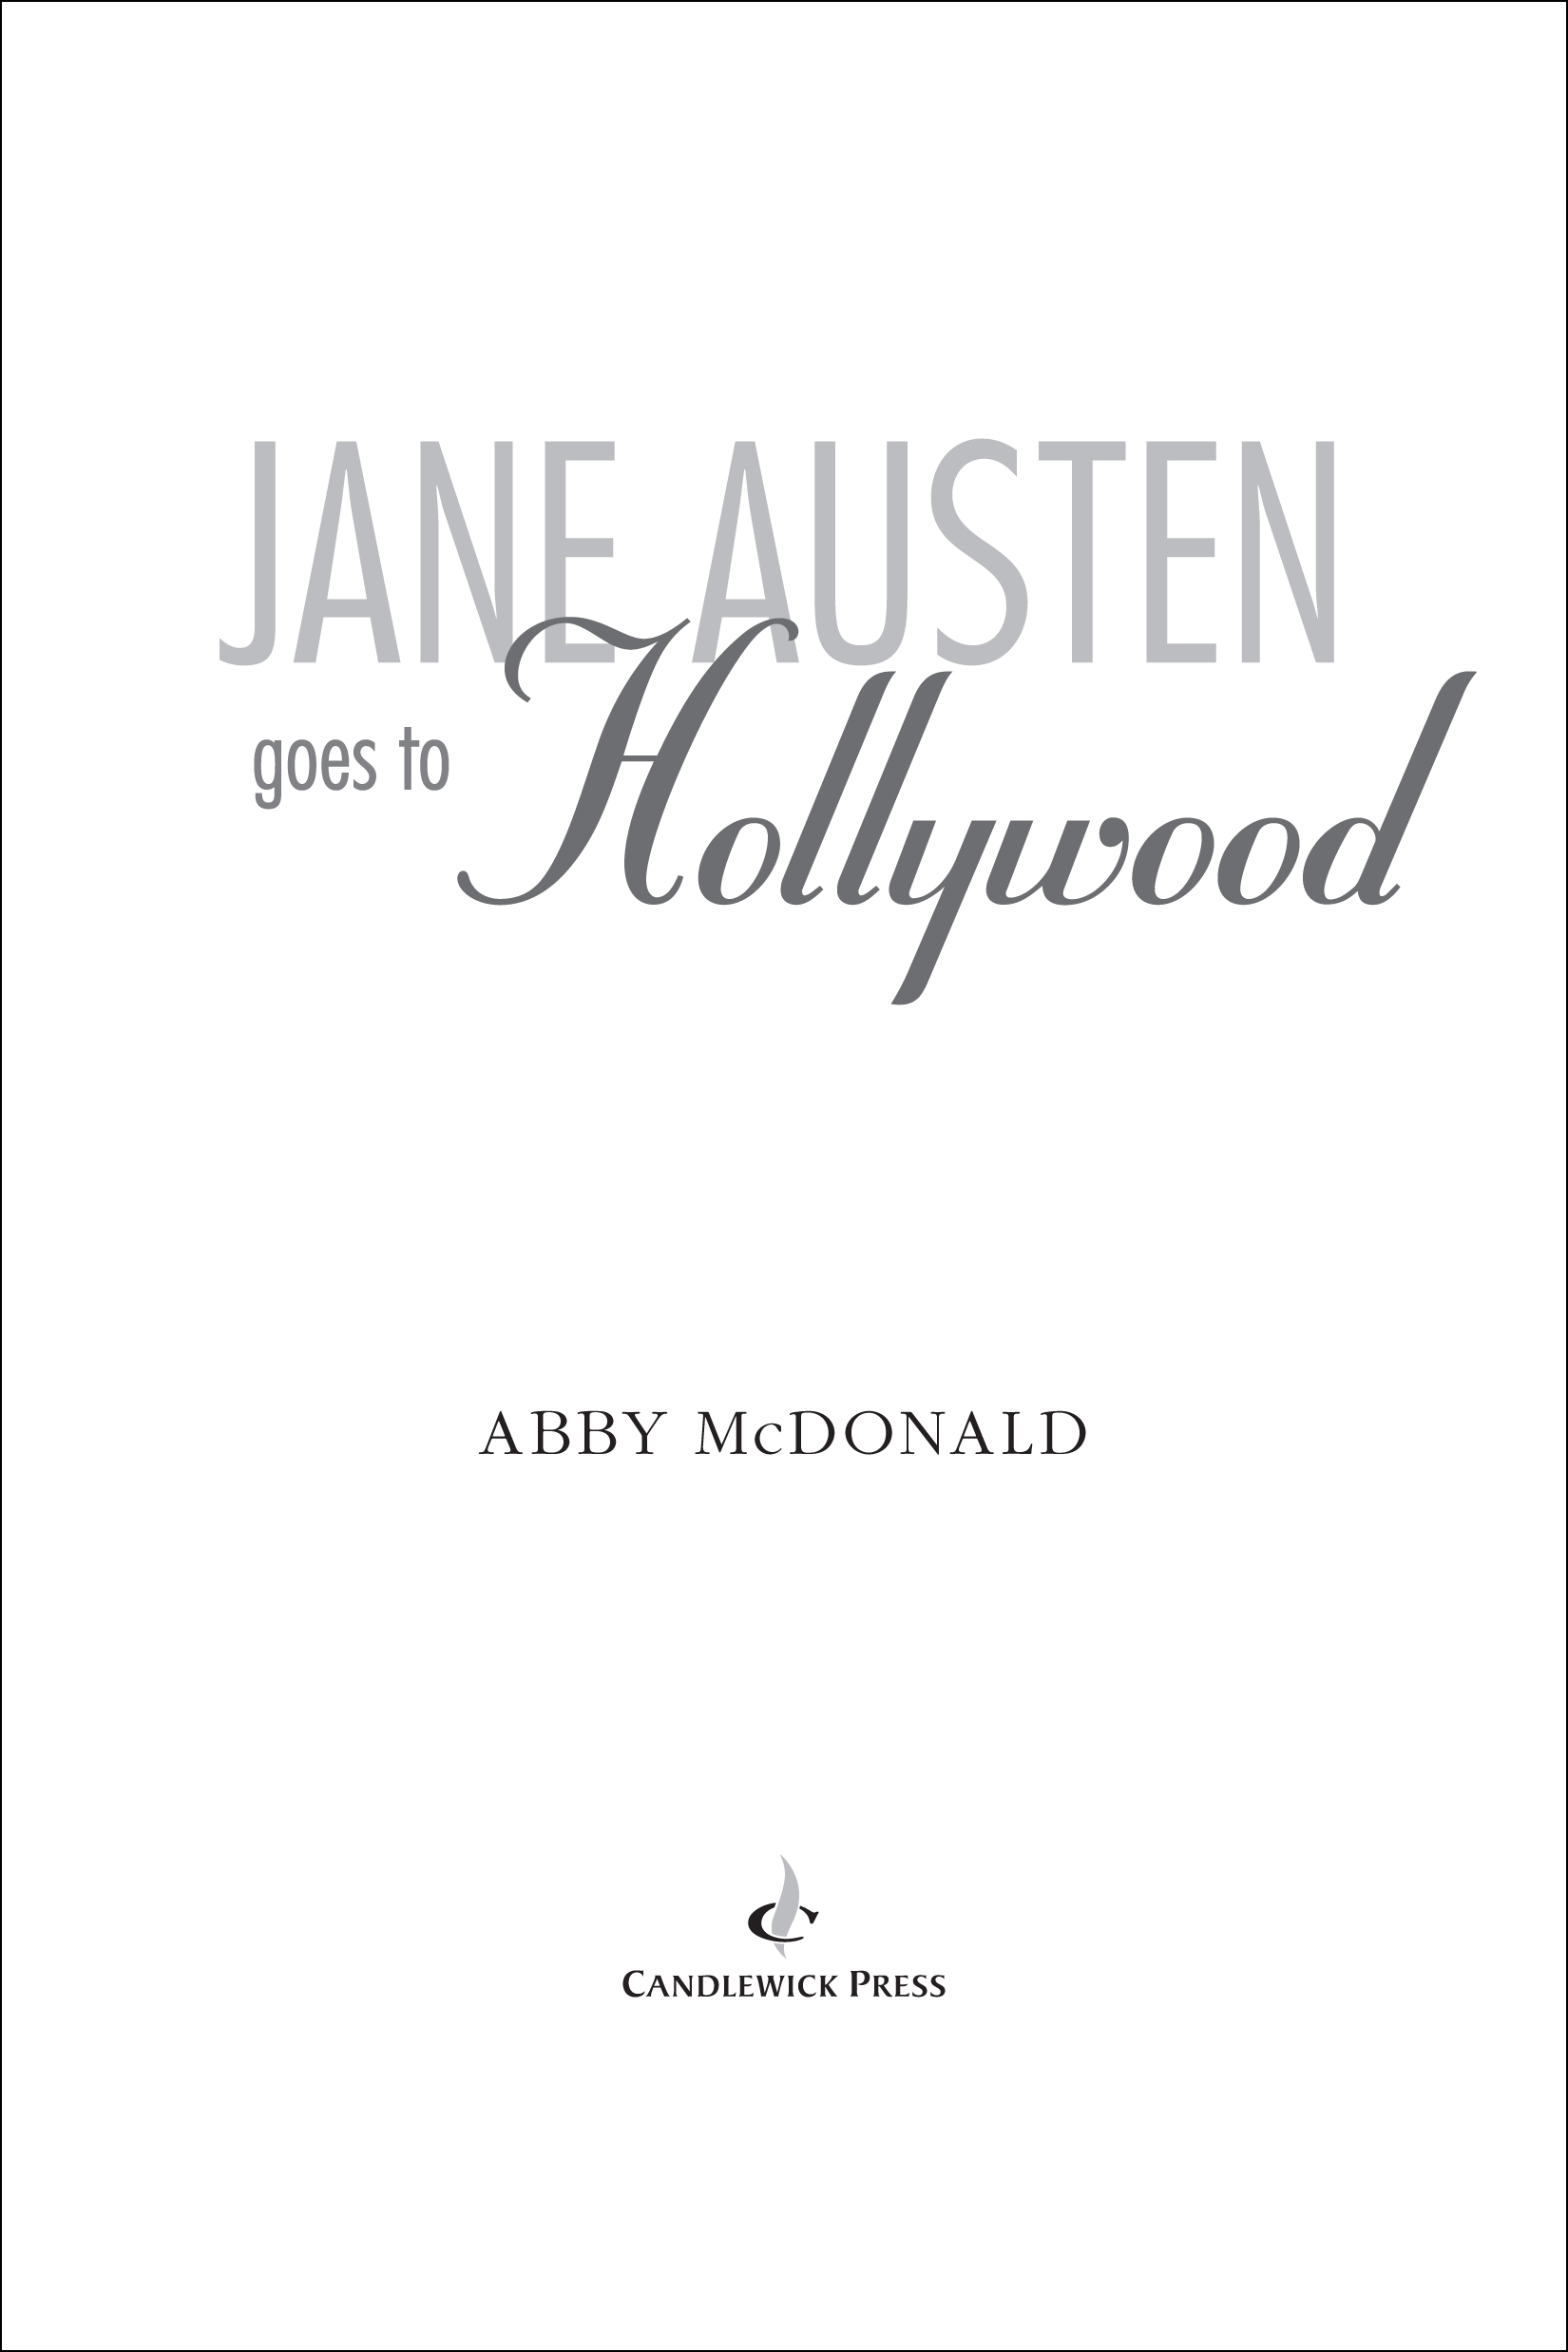 Title page for JANE AUSTEN GOES TO HOLLYWOOD